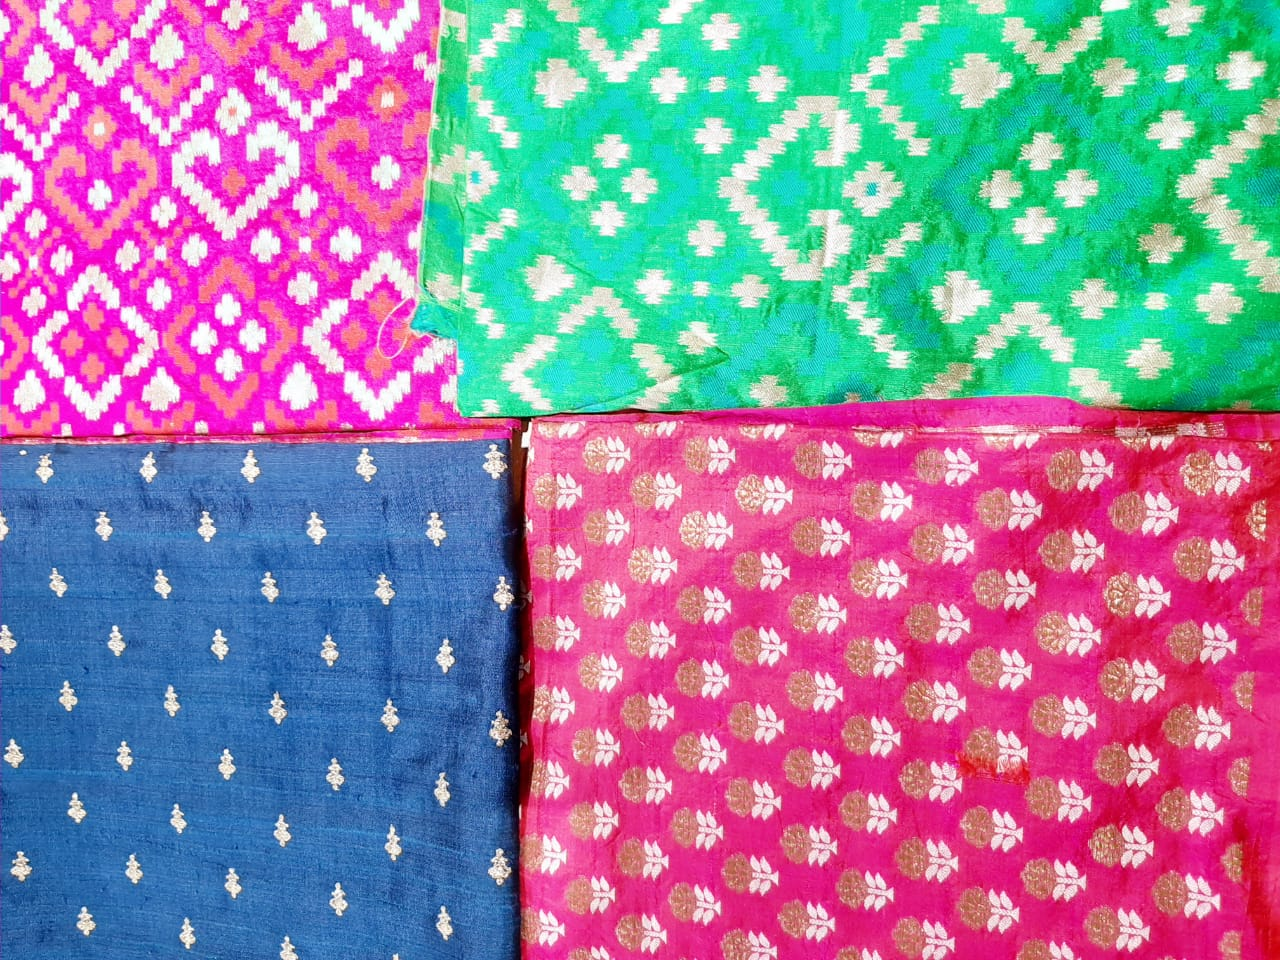 brocades, pink, indigo, green, seasons Vadodara, baroda shopping, seasons vadodara, festive, printed fabric, choli fabric,